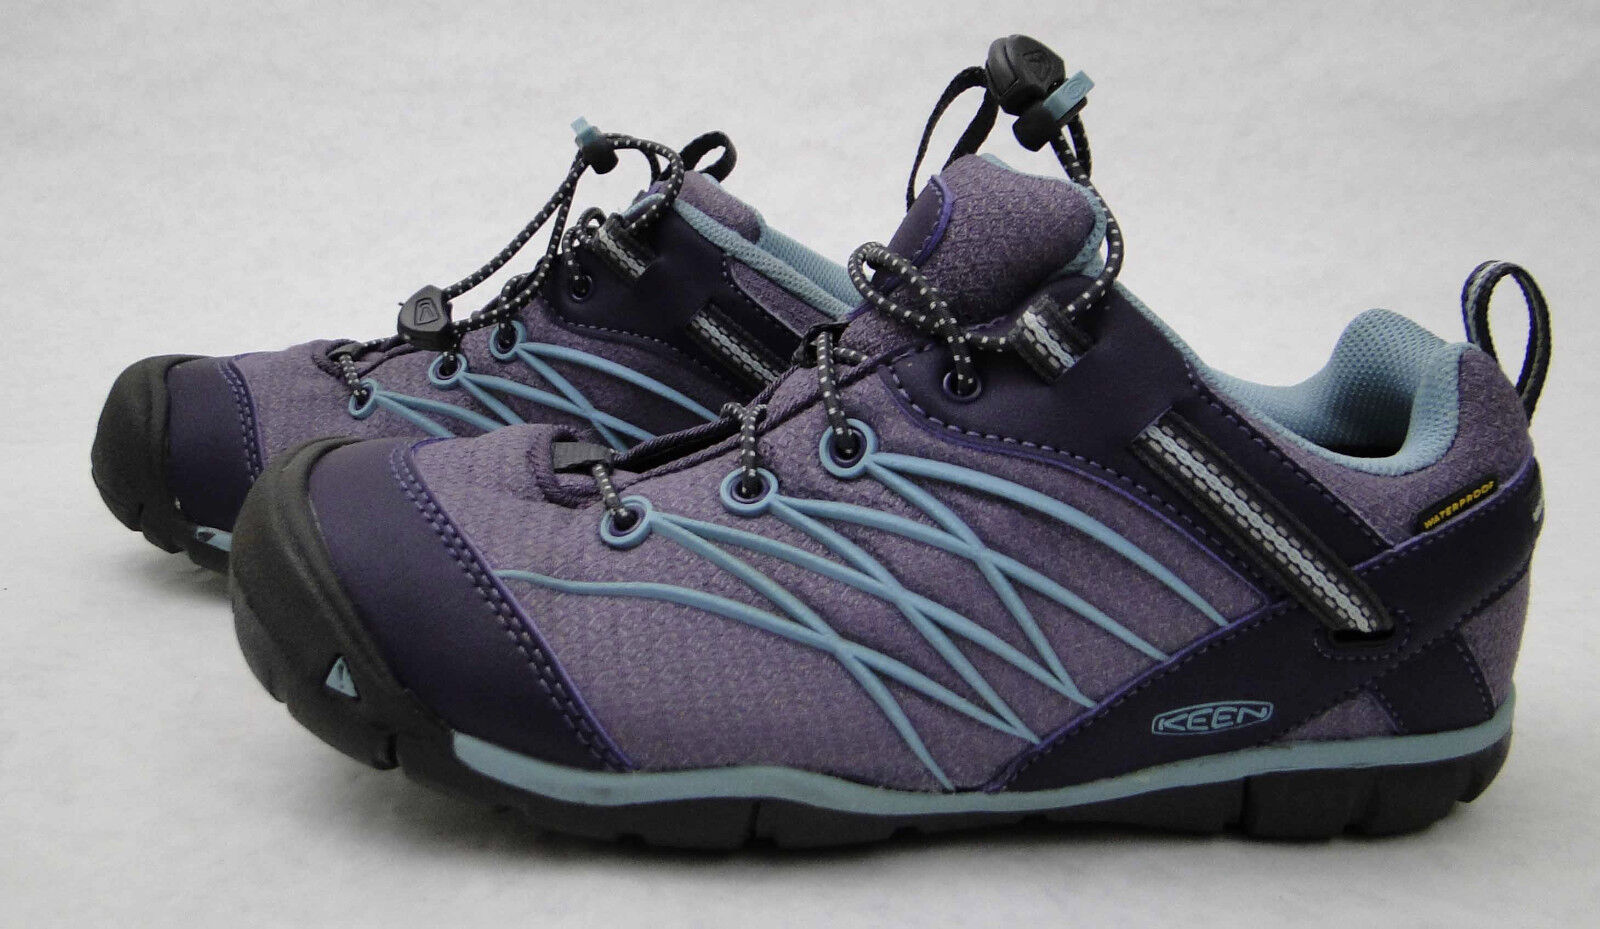 Women's Keen Purple and Teal Blue Outdoor Hiking Sneaker Shoes Size 5